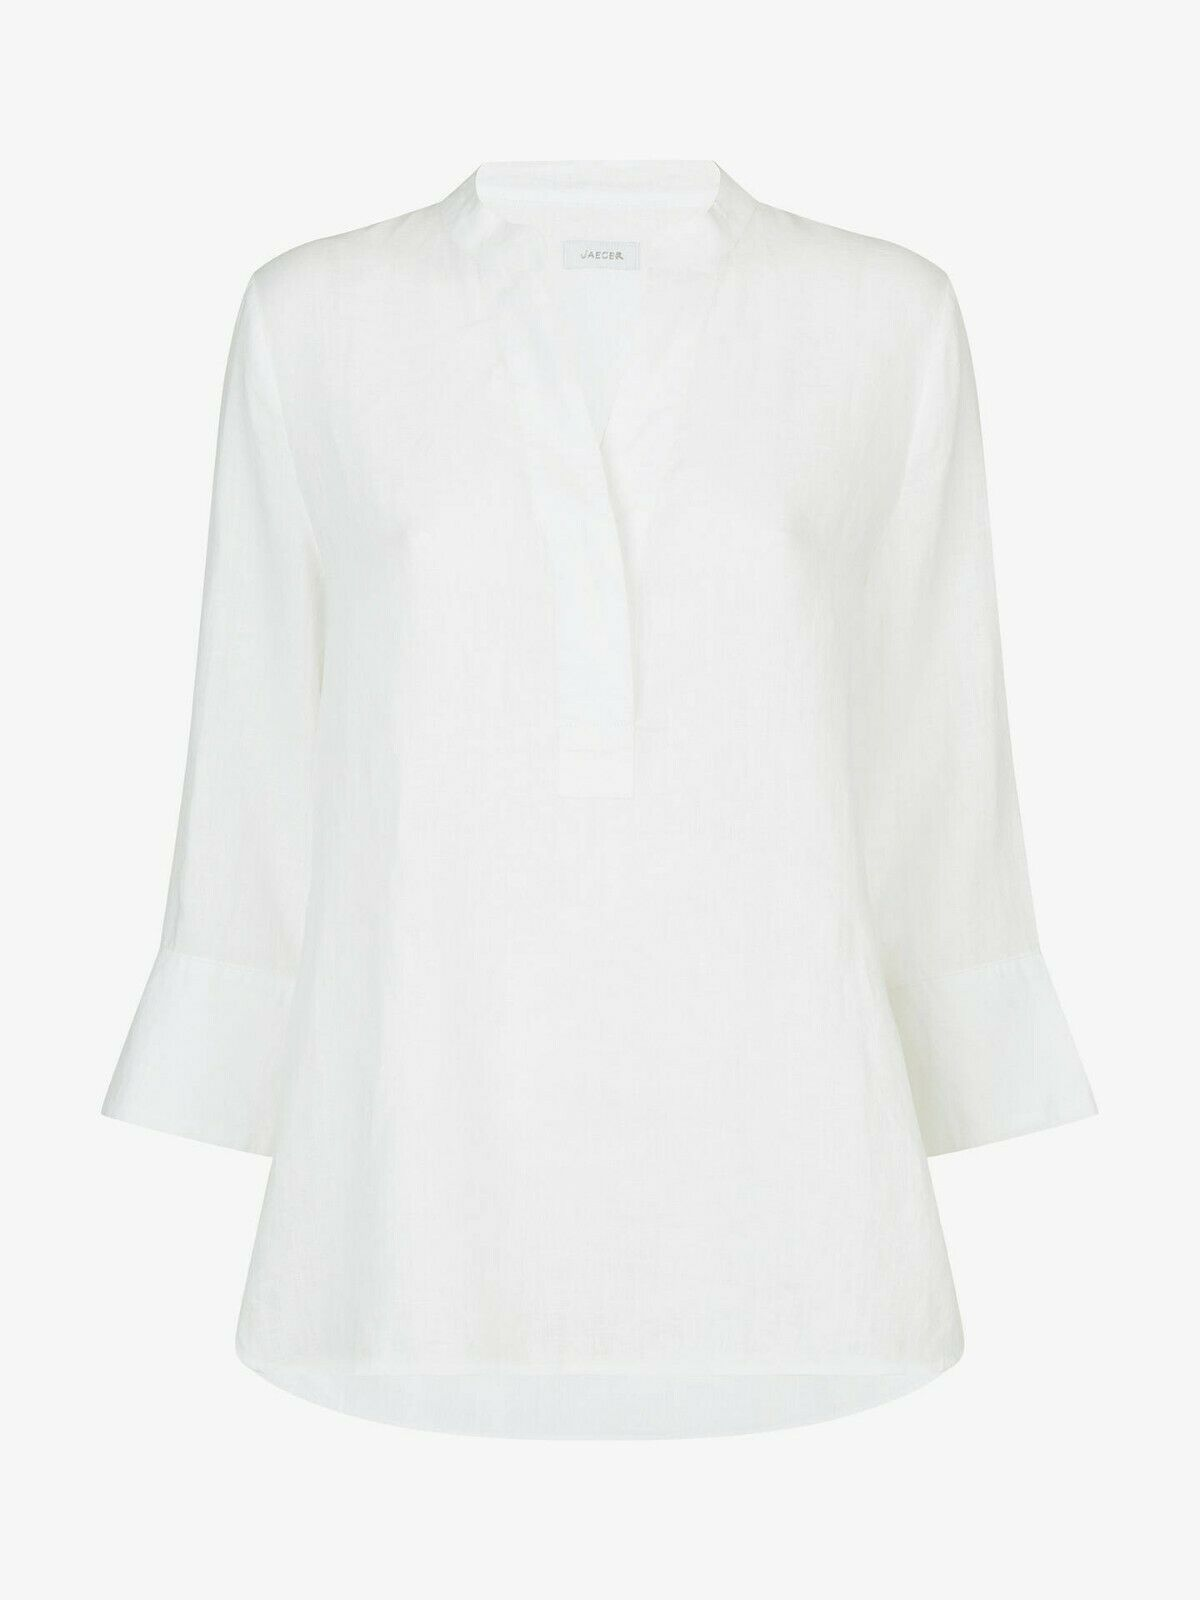 Jaeger Linen Tunic Top - Weiß - U.K. 10 - Brand New With Tags